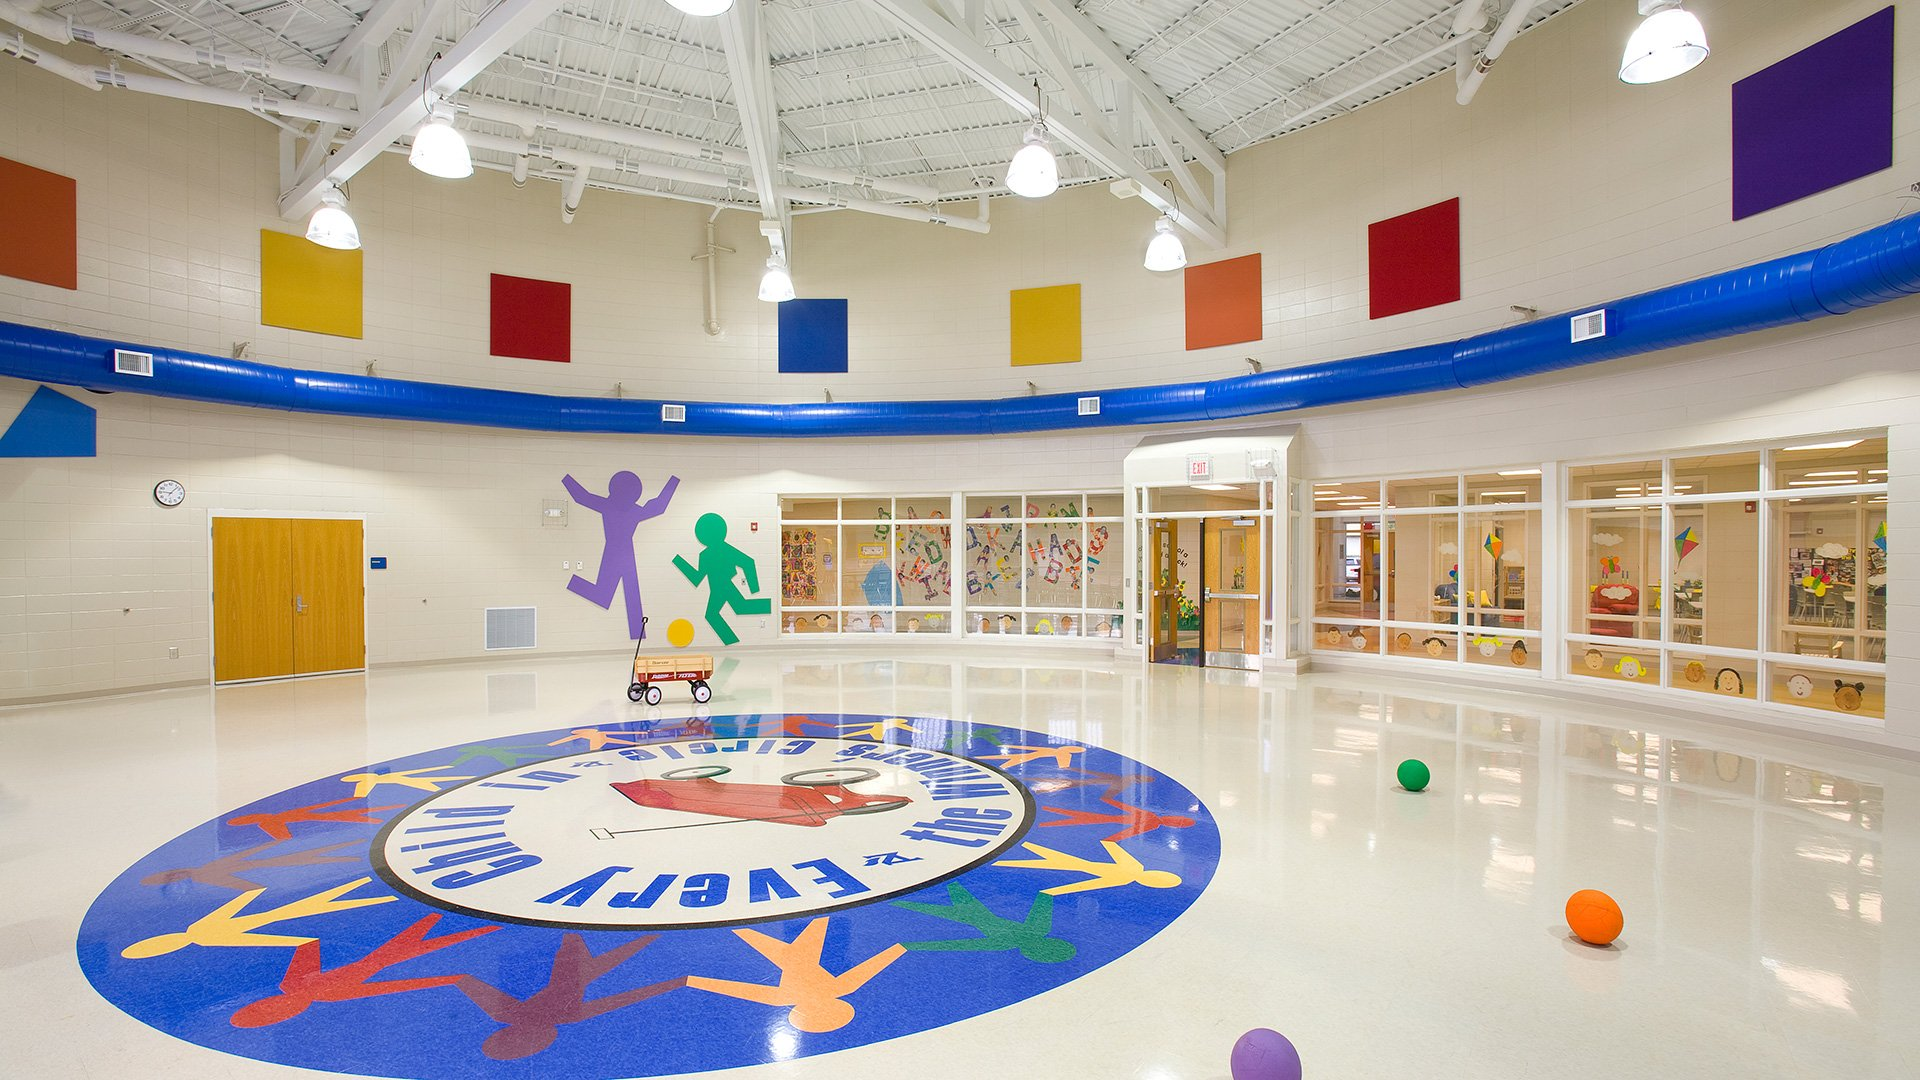 West Market Early Childhood & Education Center, Anderson School District 5